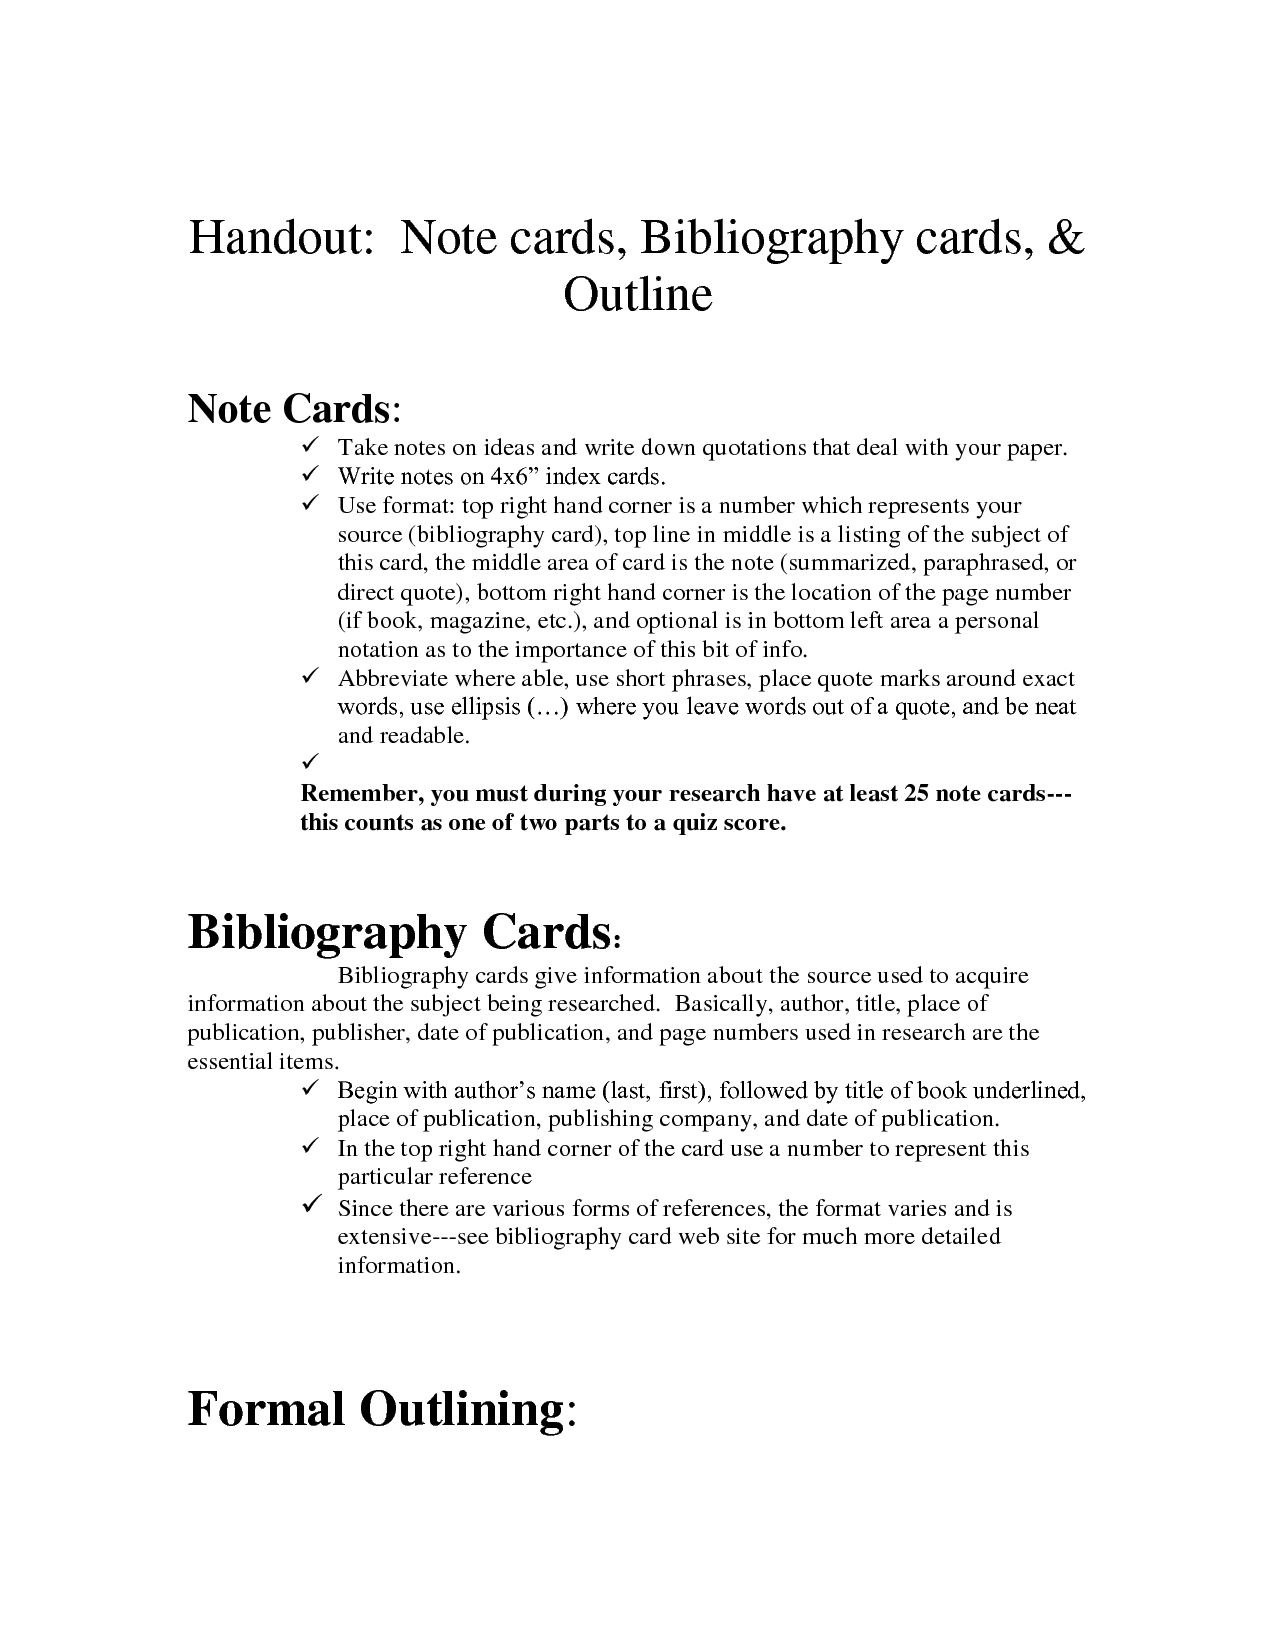 Blank Notecards To Document Sources And Take Notes